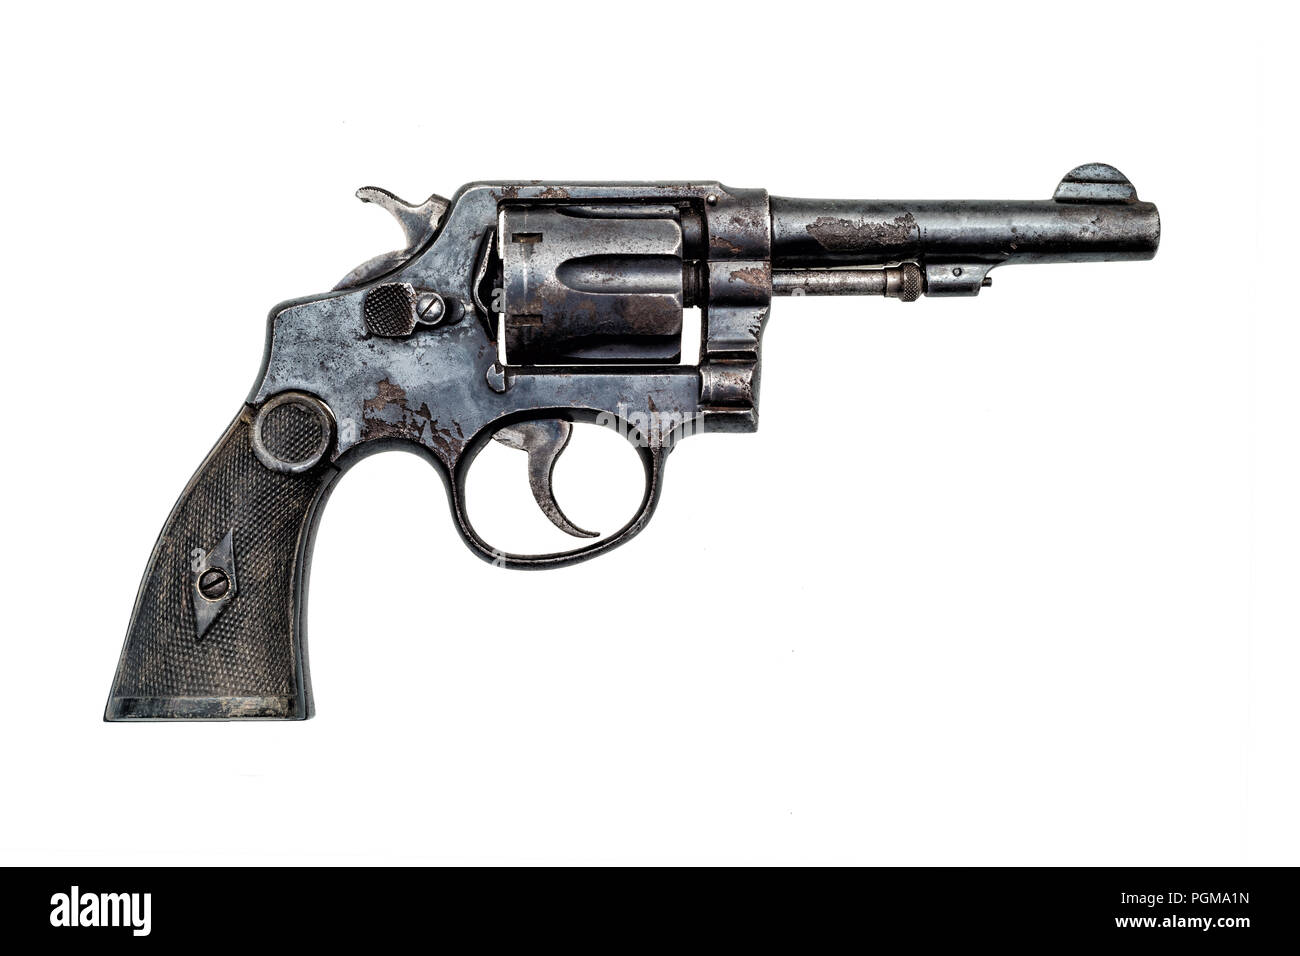 old military police rusty revolver handgun on white background - Stock Image